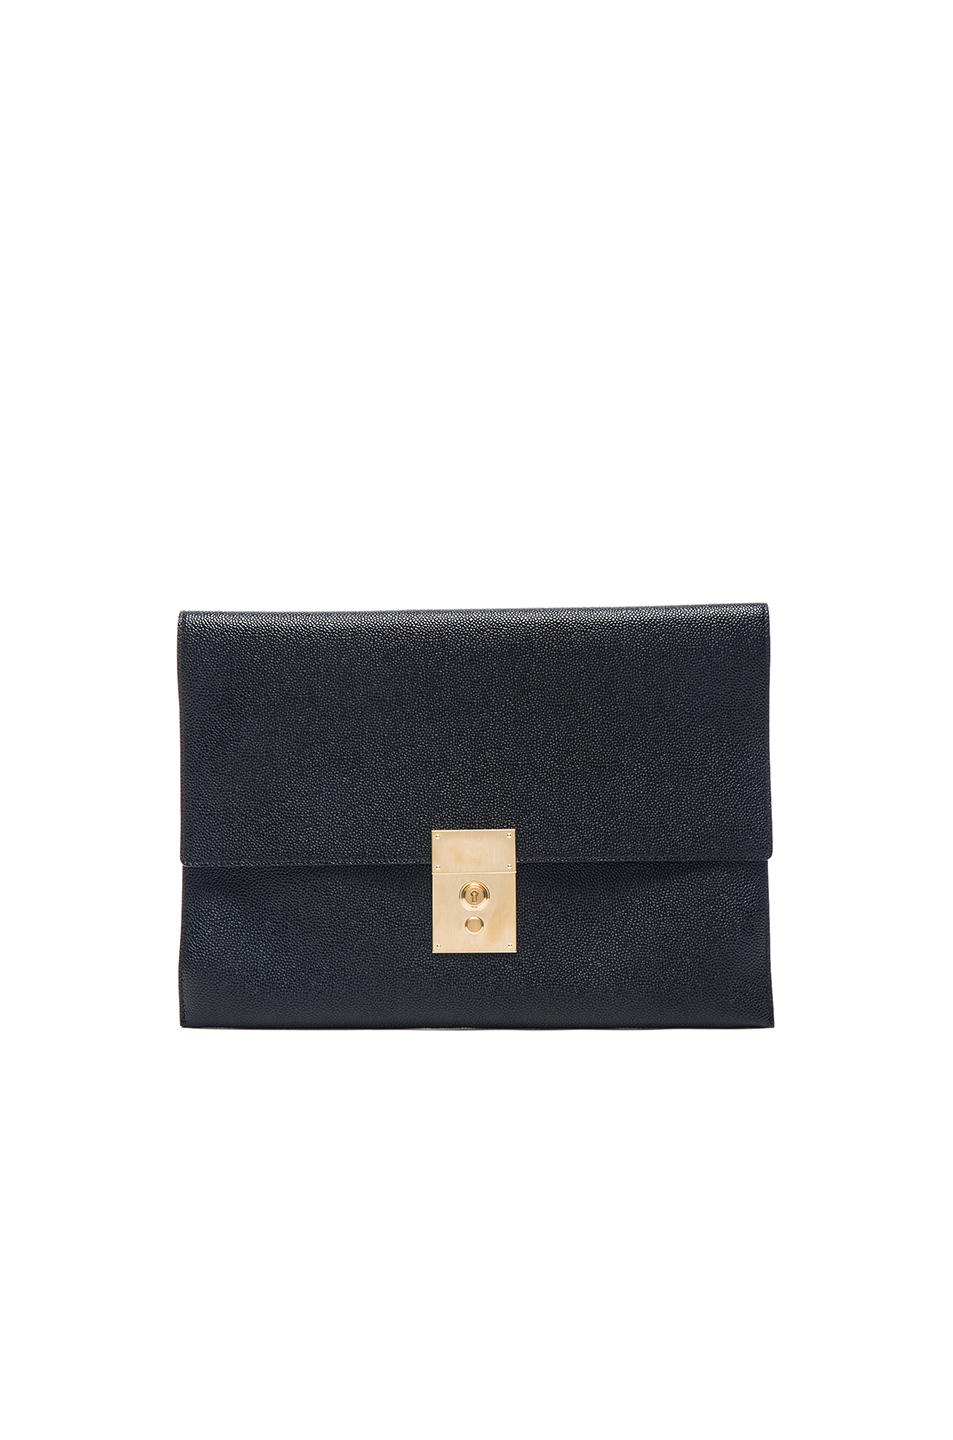 Thom Browne Lock Document Wallet in Black